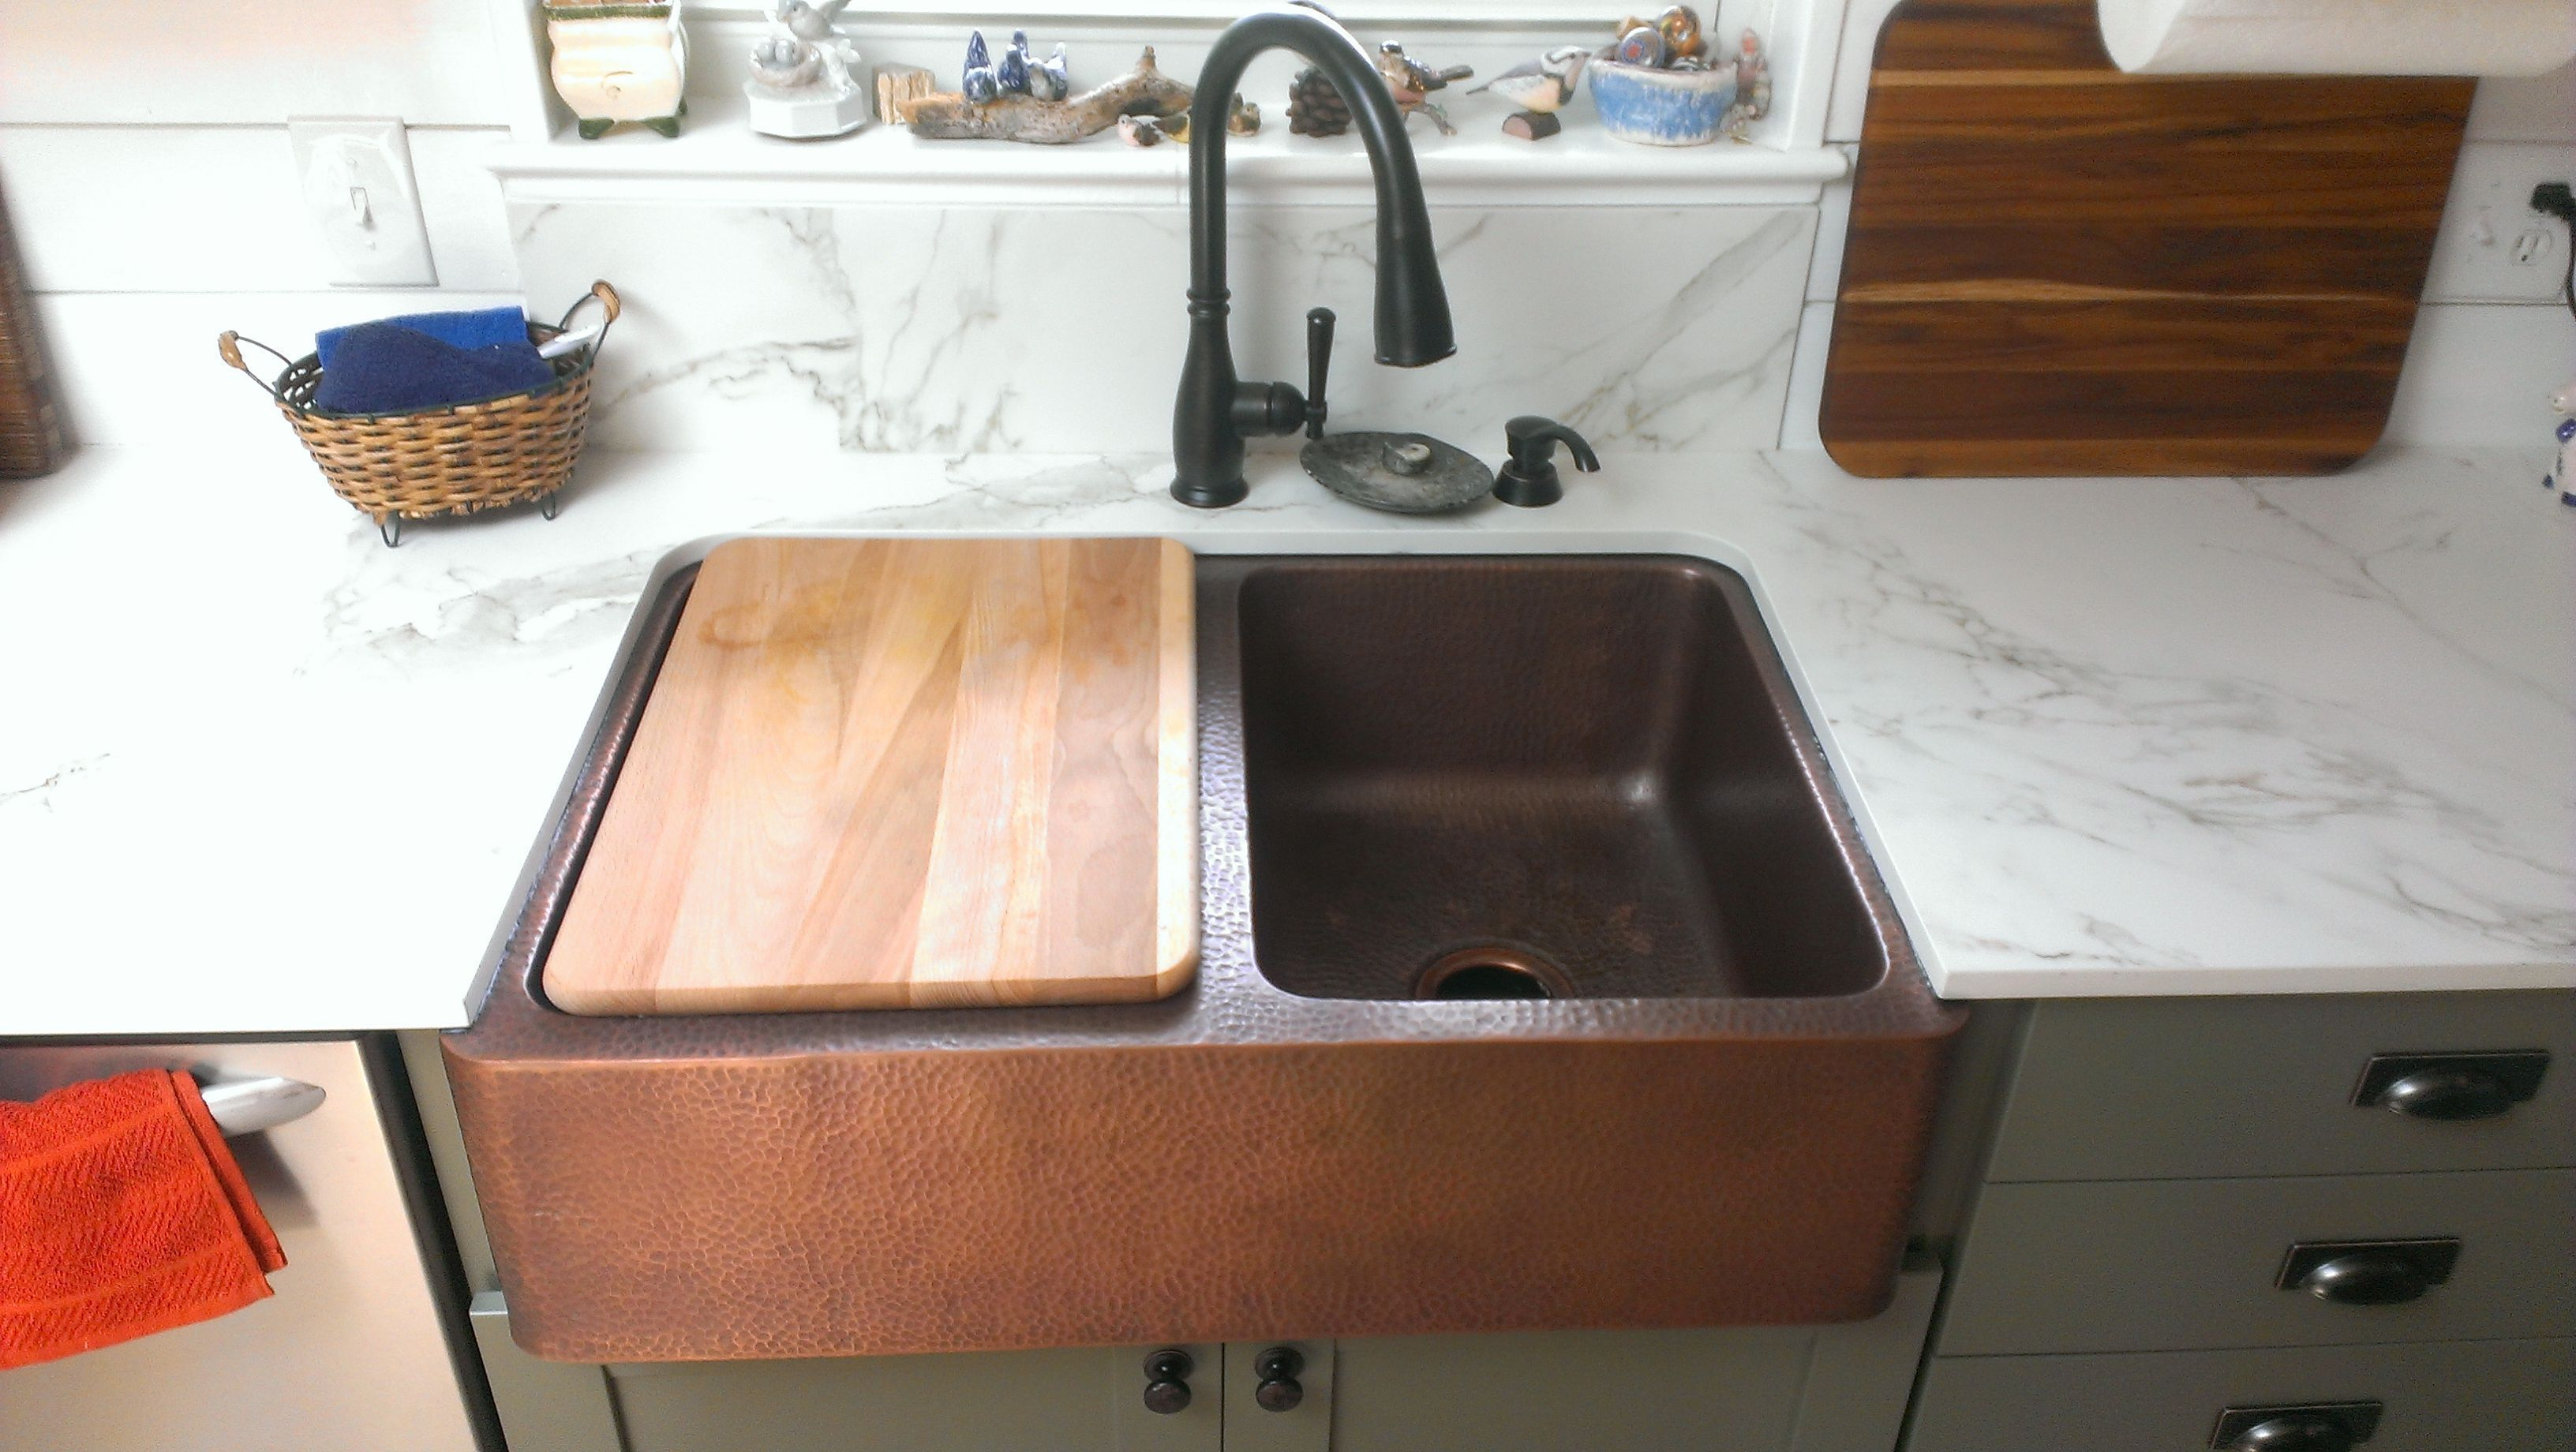 Copper farmhouse sink by sinkology purchased from home